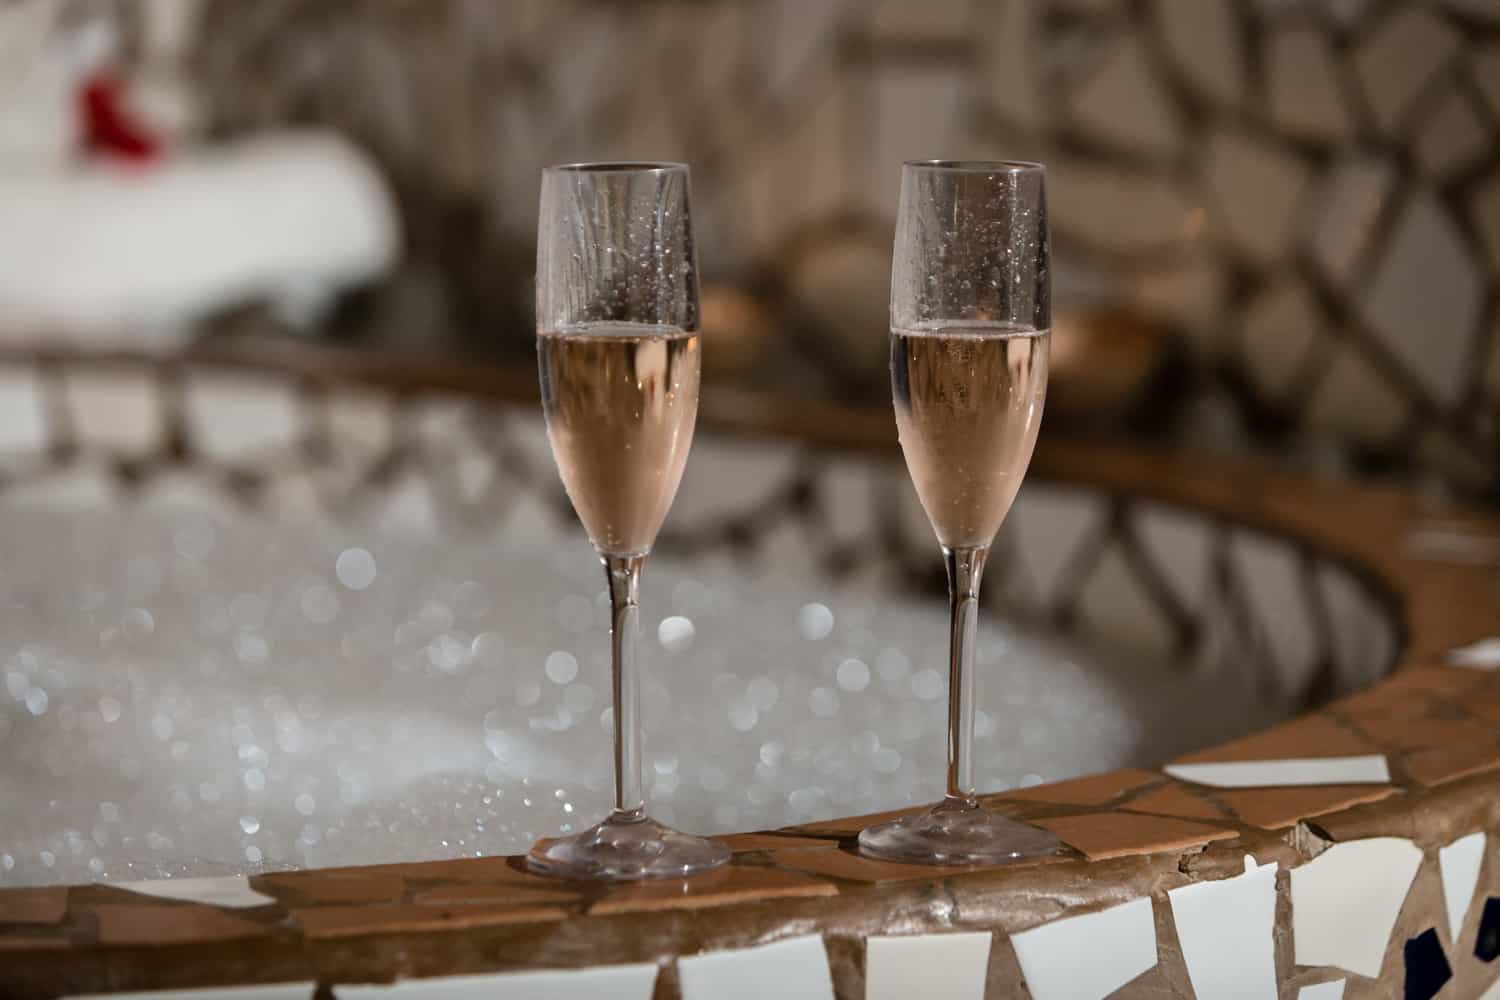 Flutes of champaign by romantic hot tub await couple about to tie the know.